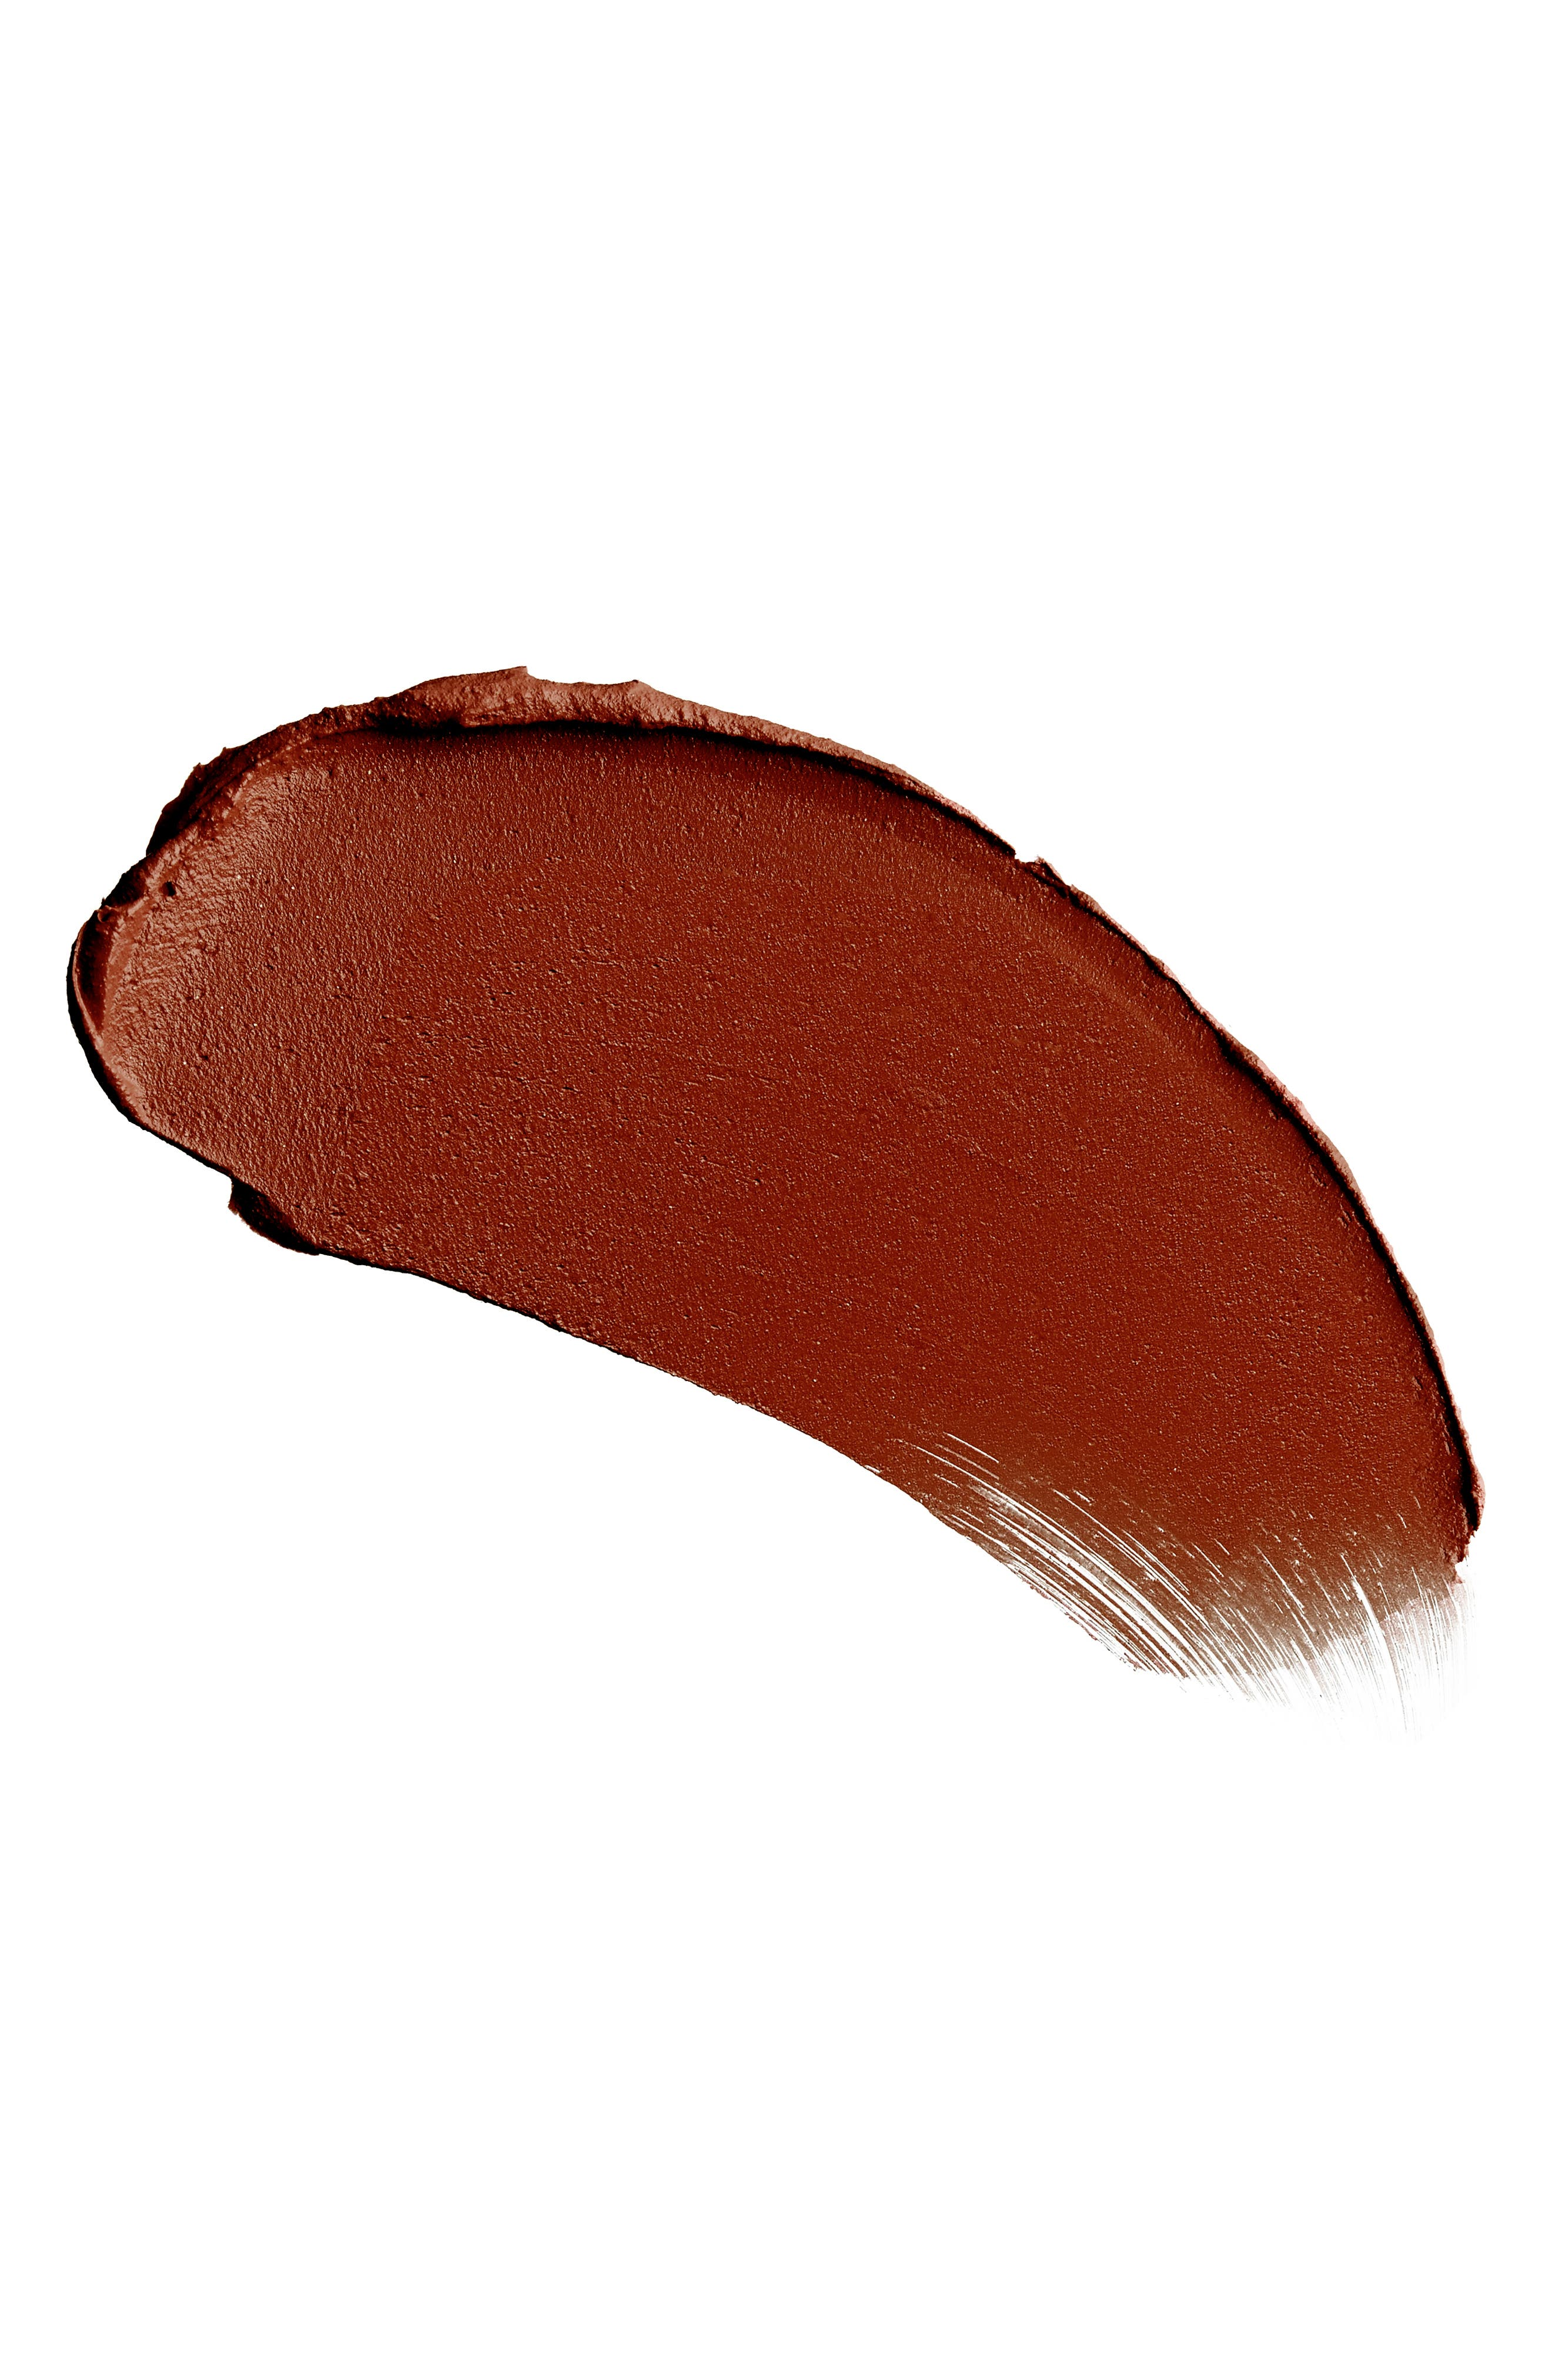 Matte Revolution Lipstick,                             Alternate thumbnail 3, color,                             BIRKIN BROWN